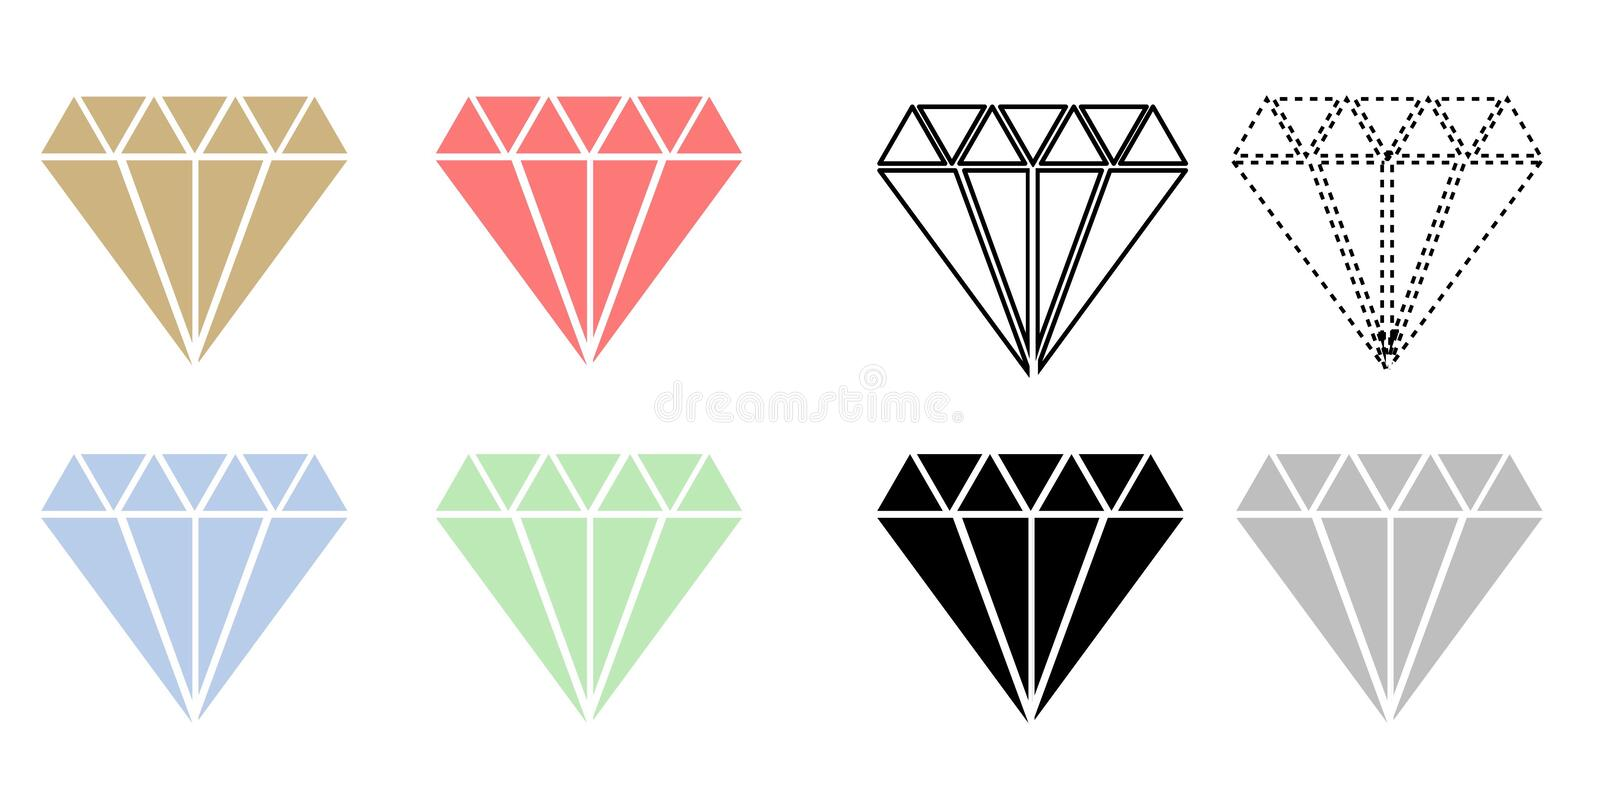 Diamants illustration stock